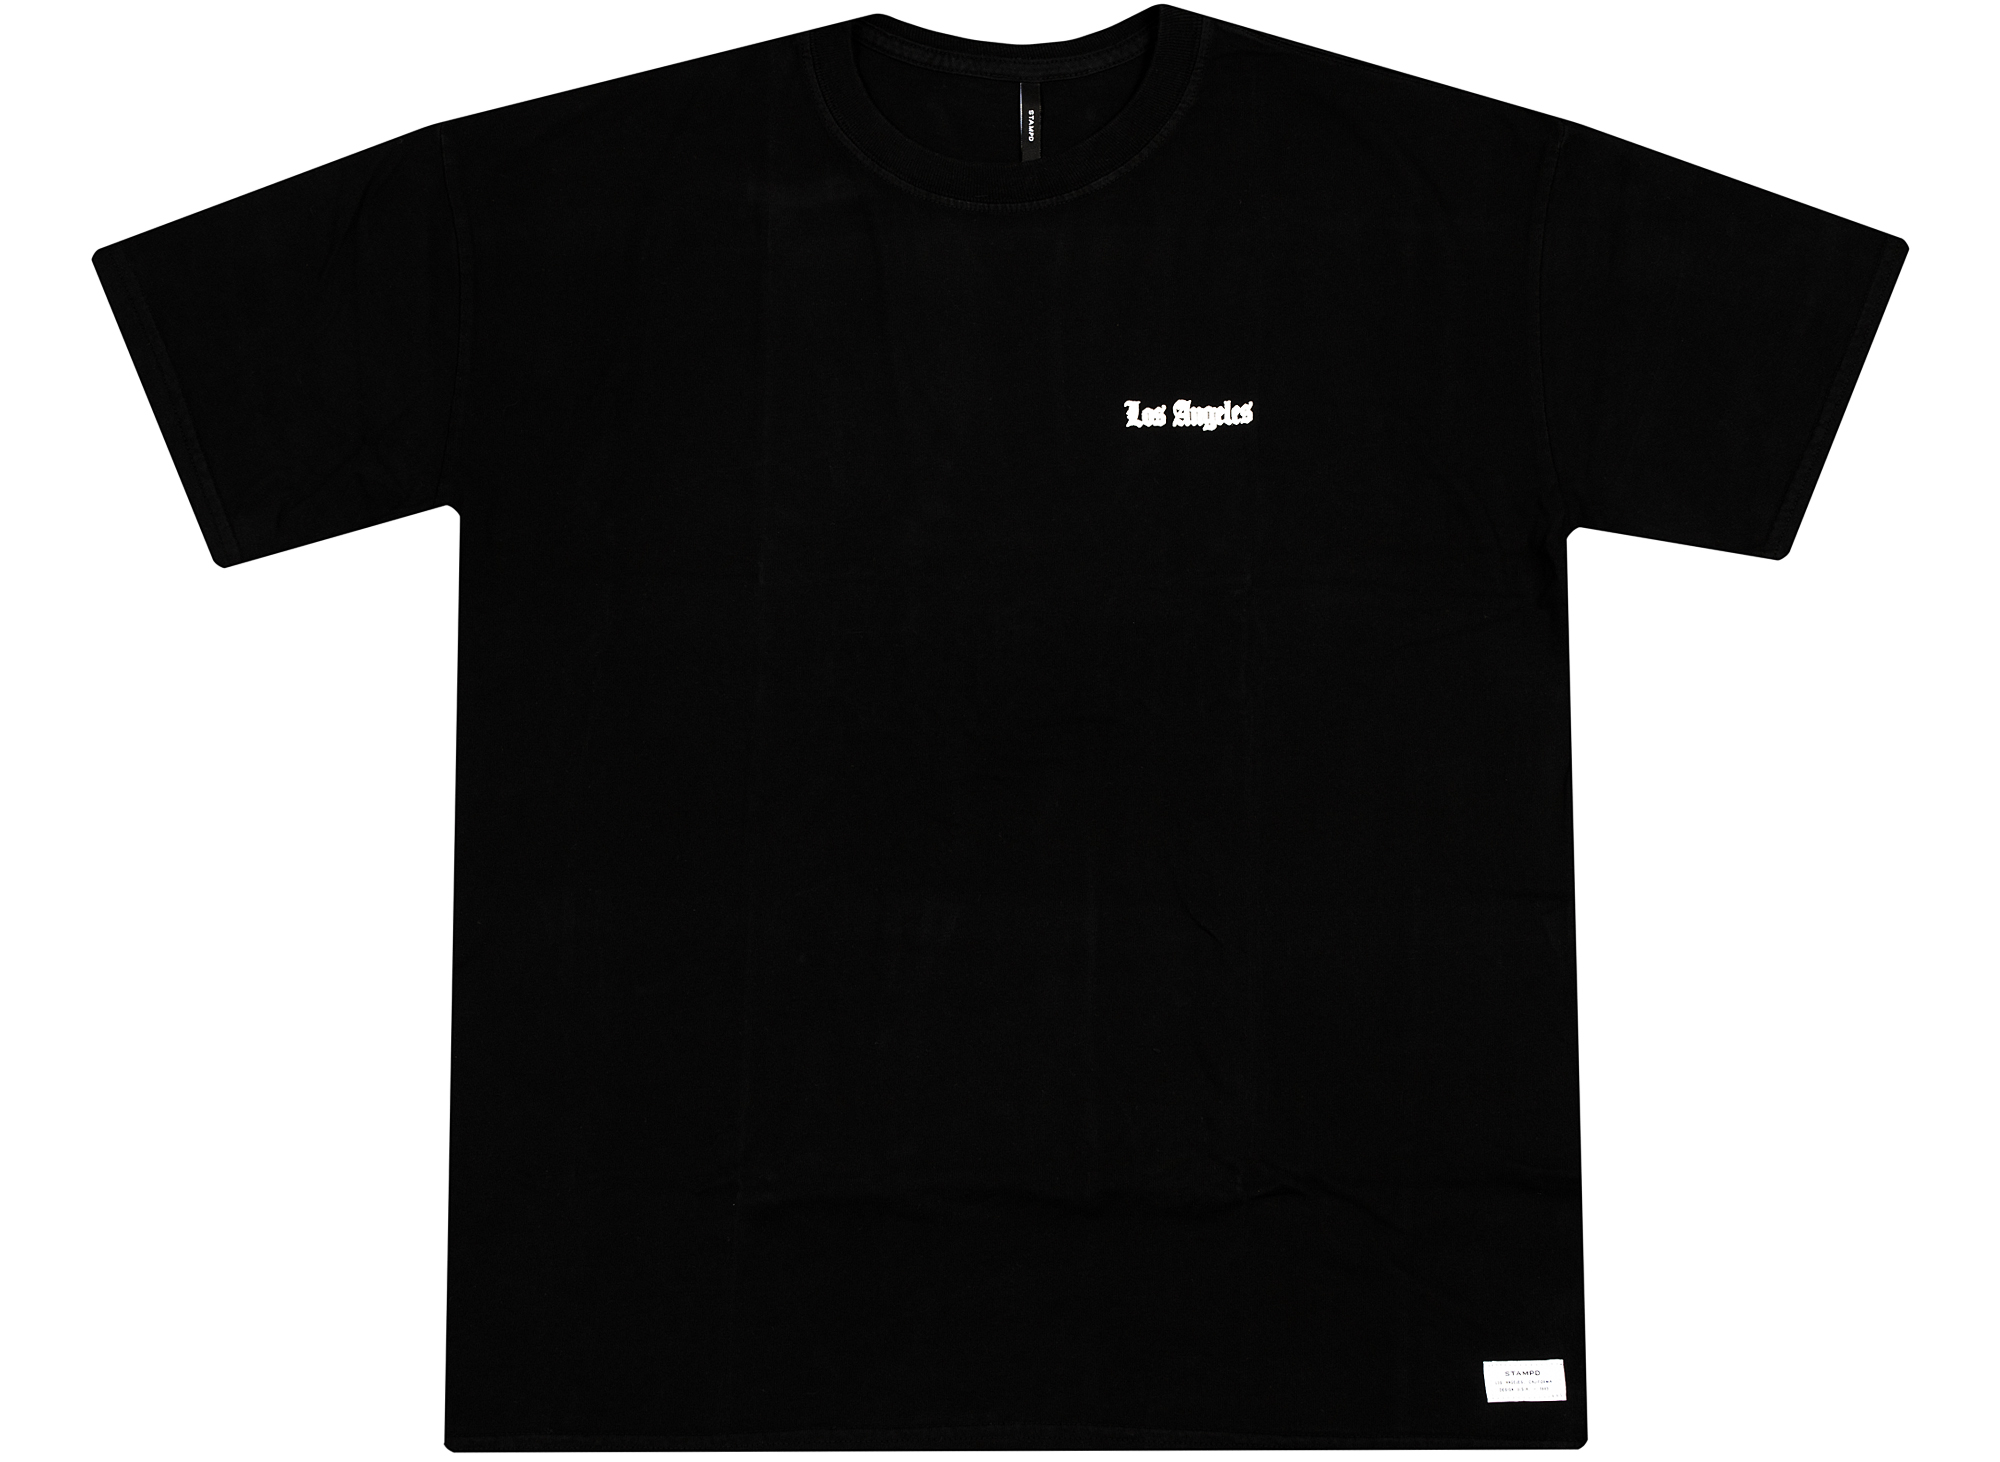 Stampd Art Worker Vol 1.1 - Los Angeles Tee